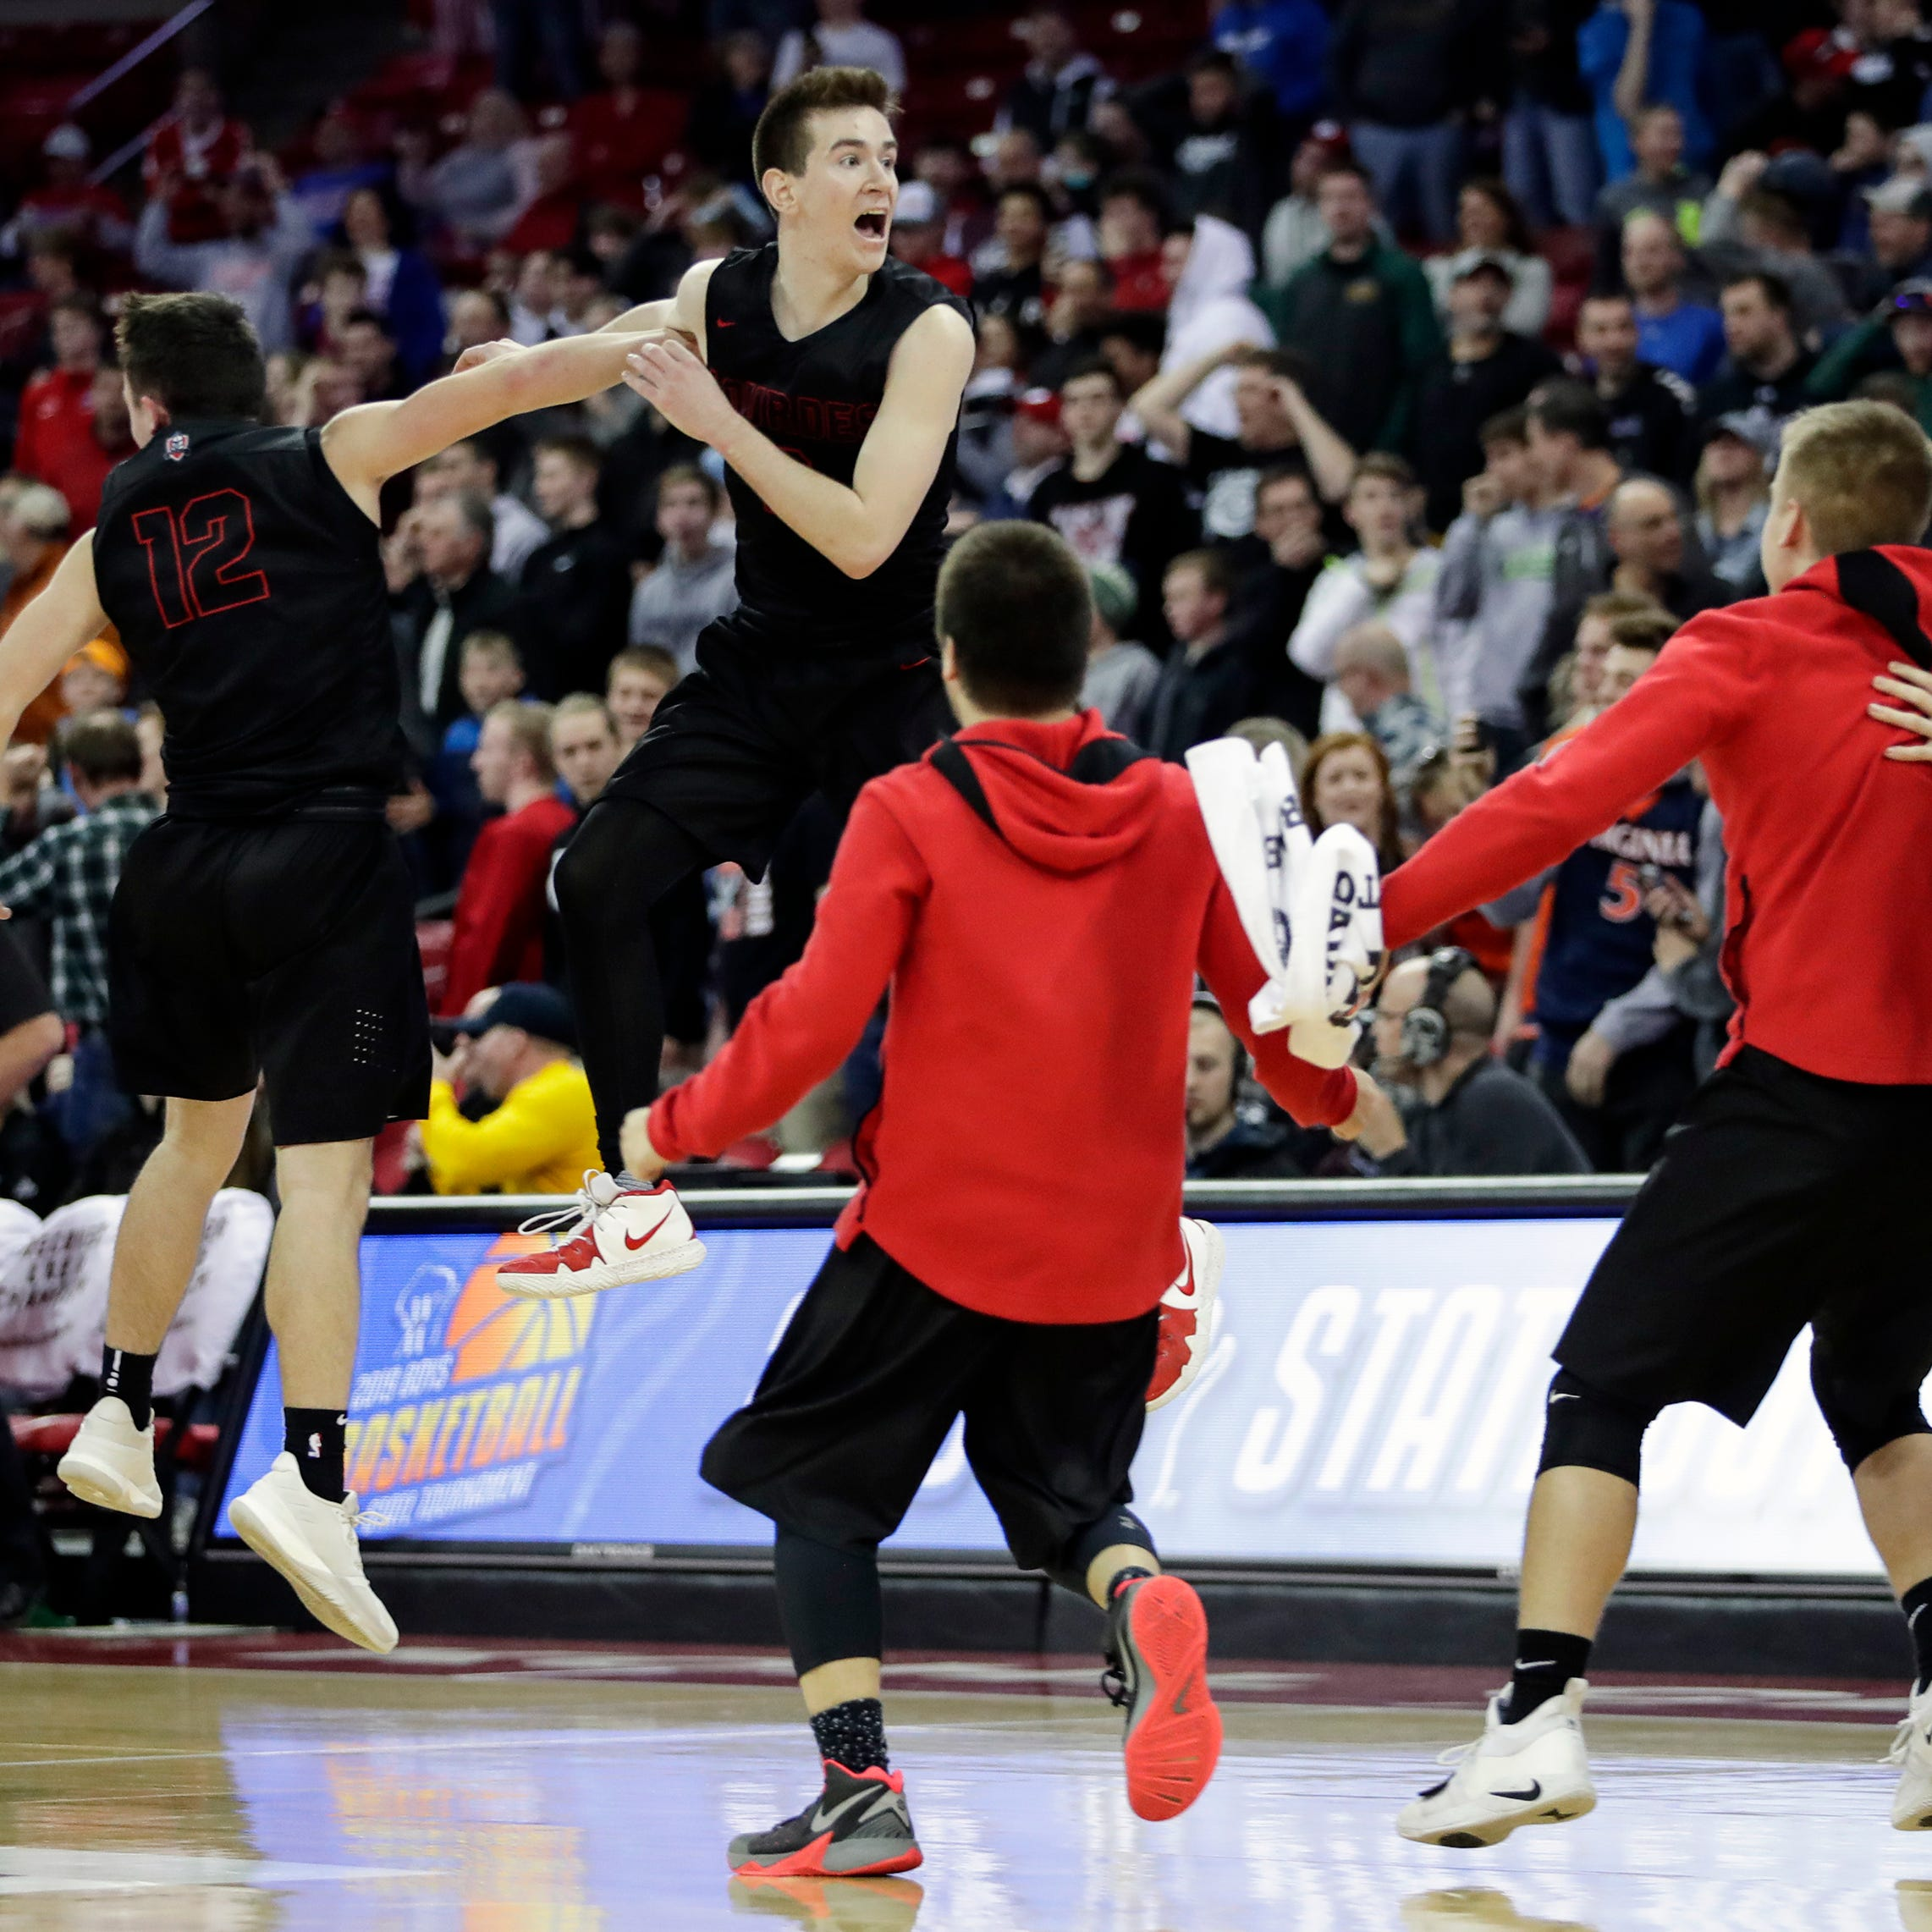 WIAA state basketball: Early-season loss pays dividends for Oshkosh Lourdes